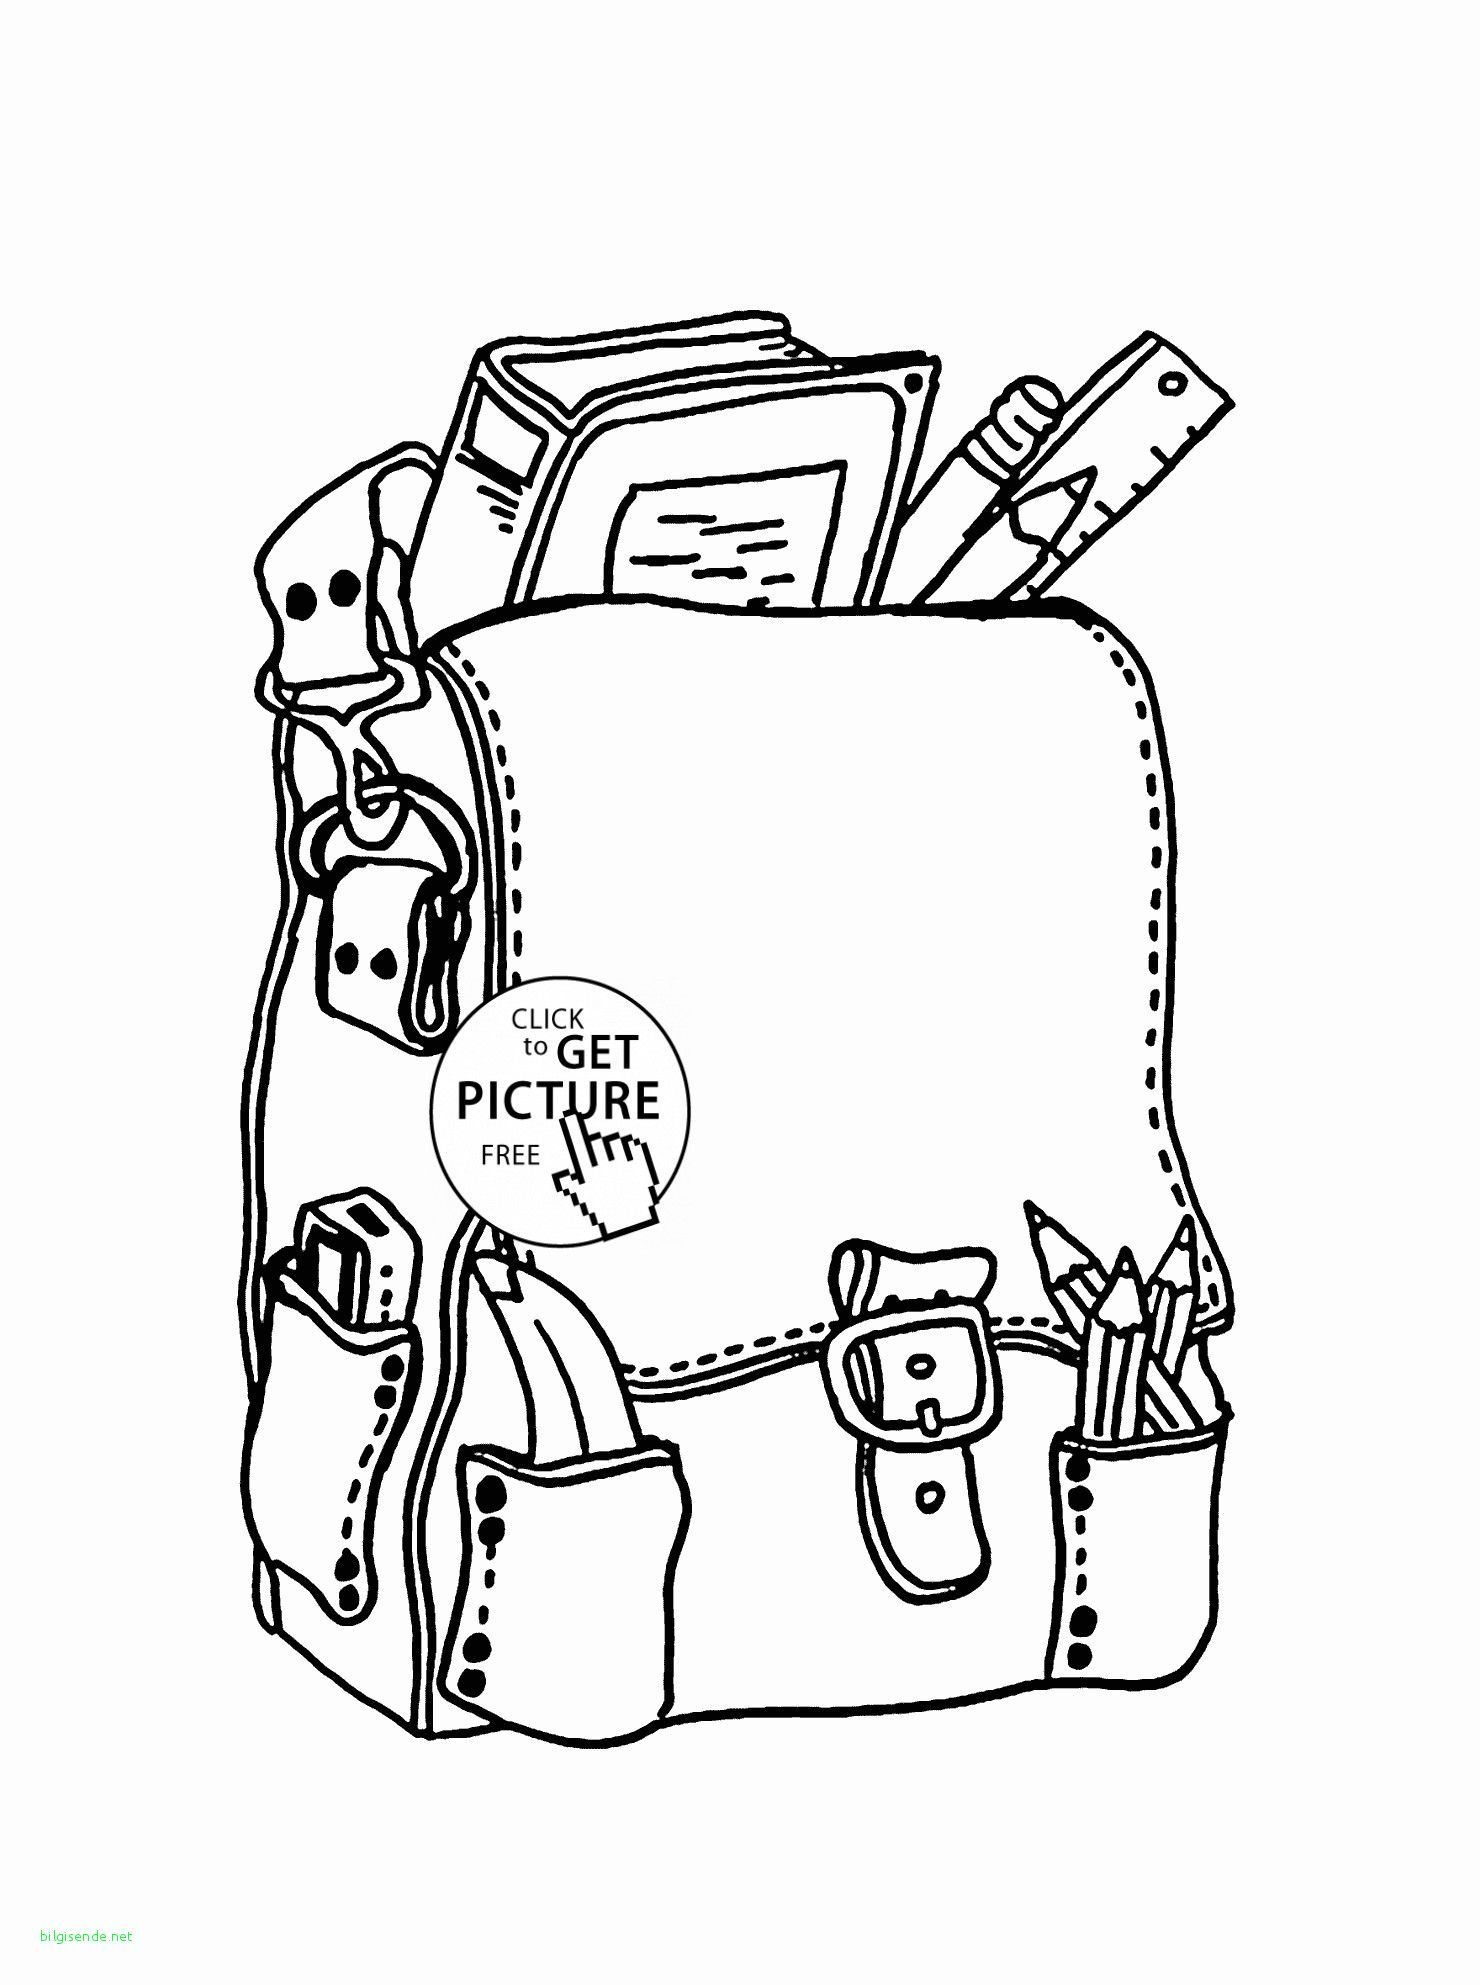 Crayon Coloring Pages Printable Coloring Pages Free Coloring Sheets Back To School For Kids